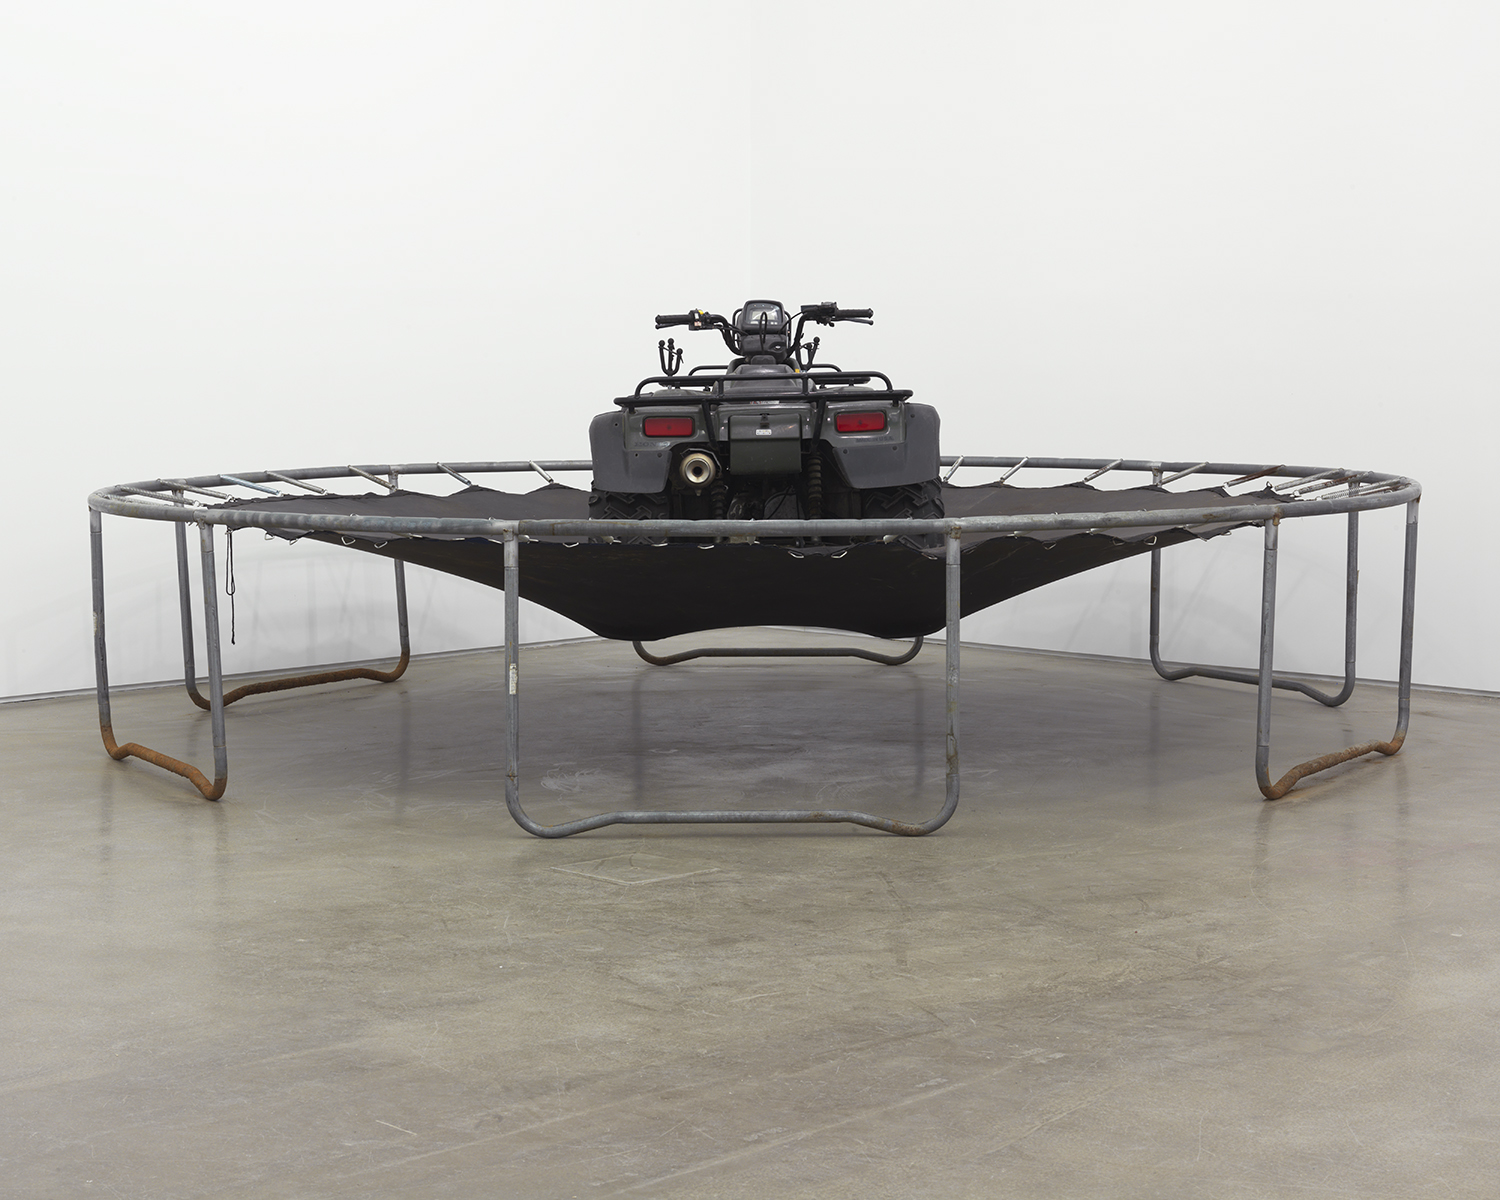 Grayson Revoir Why they hide under my garage 2013 ATV on trampoline Dimensions variable